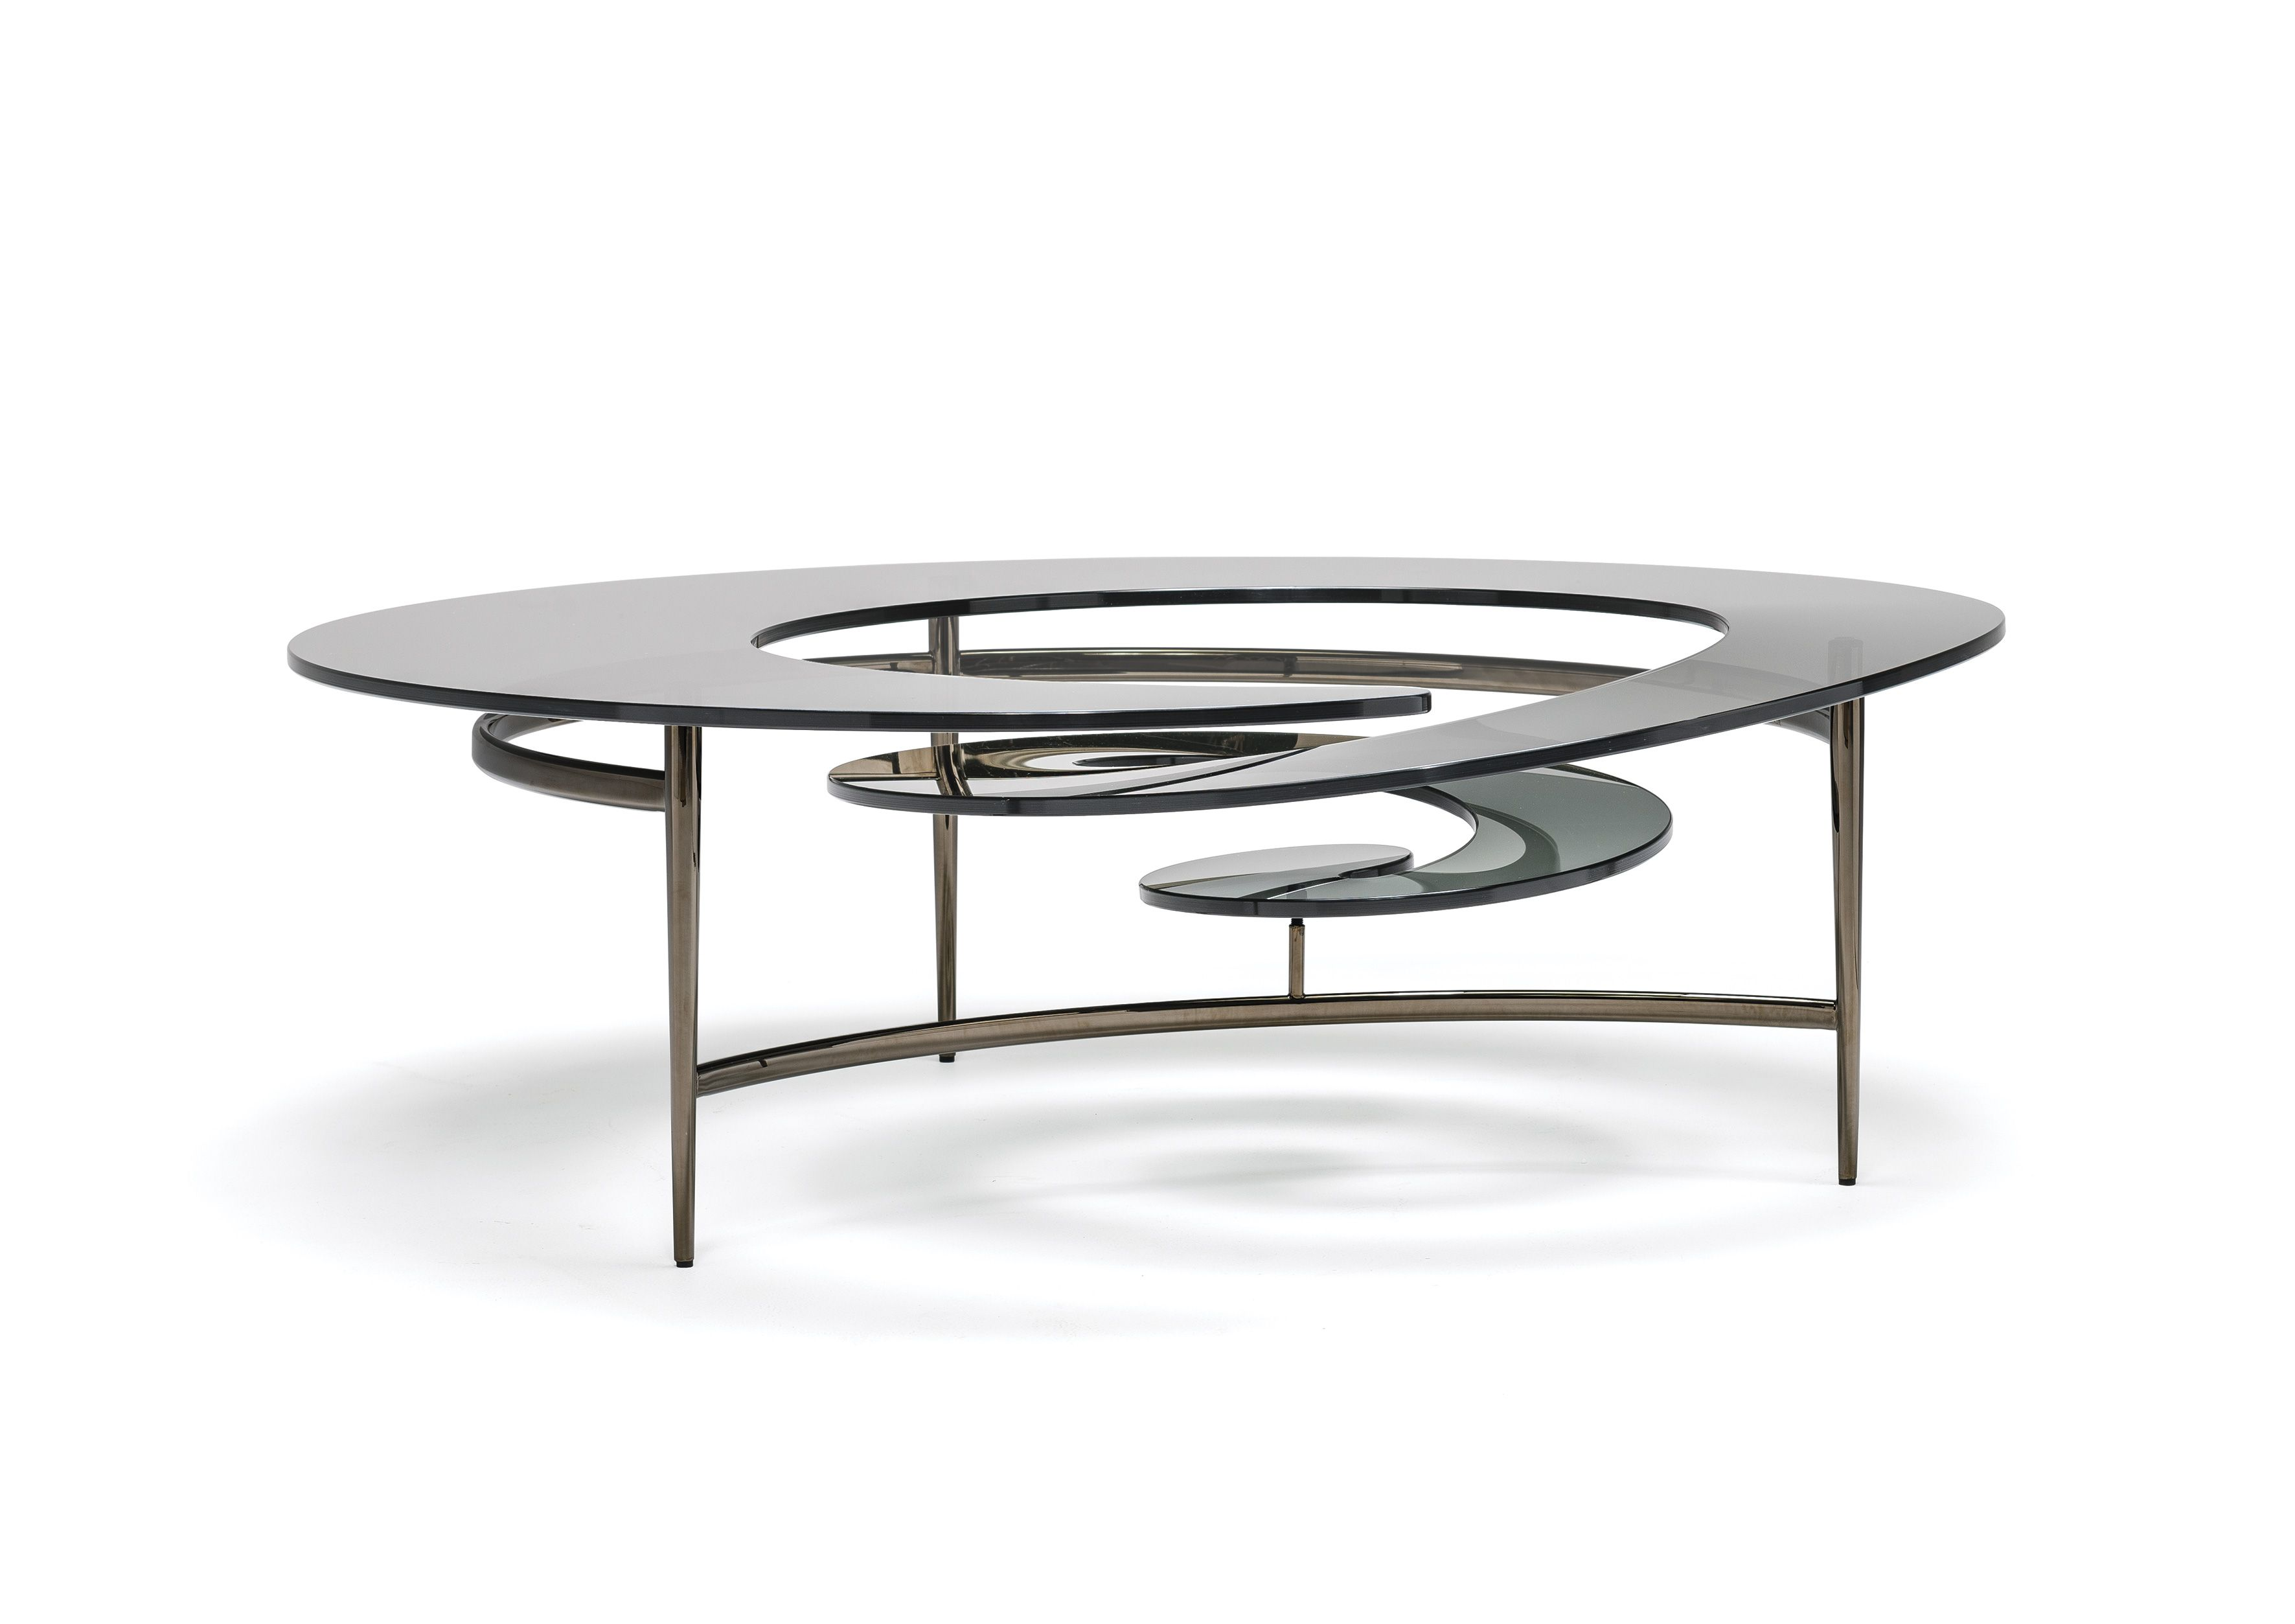 Spiral Coffee Table Cattelan Italia Coffee Table Glass Top Coffee Table Table [ 2507 x 3543 Pixel ]